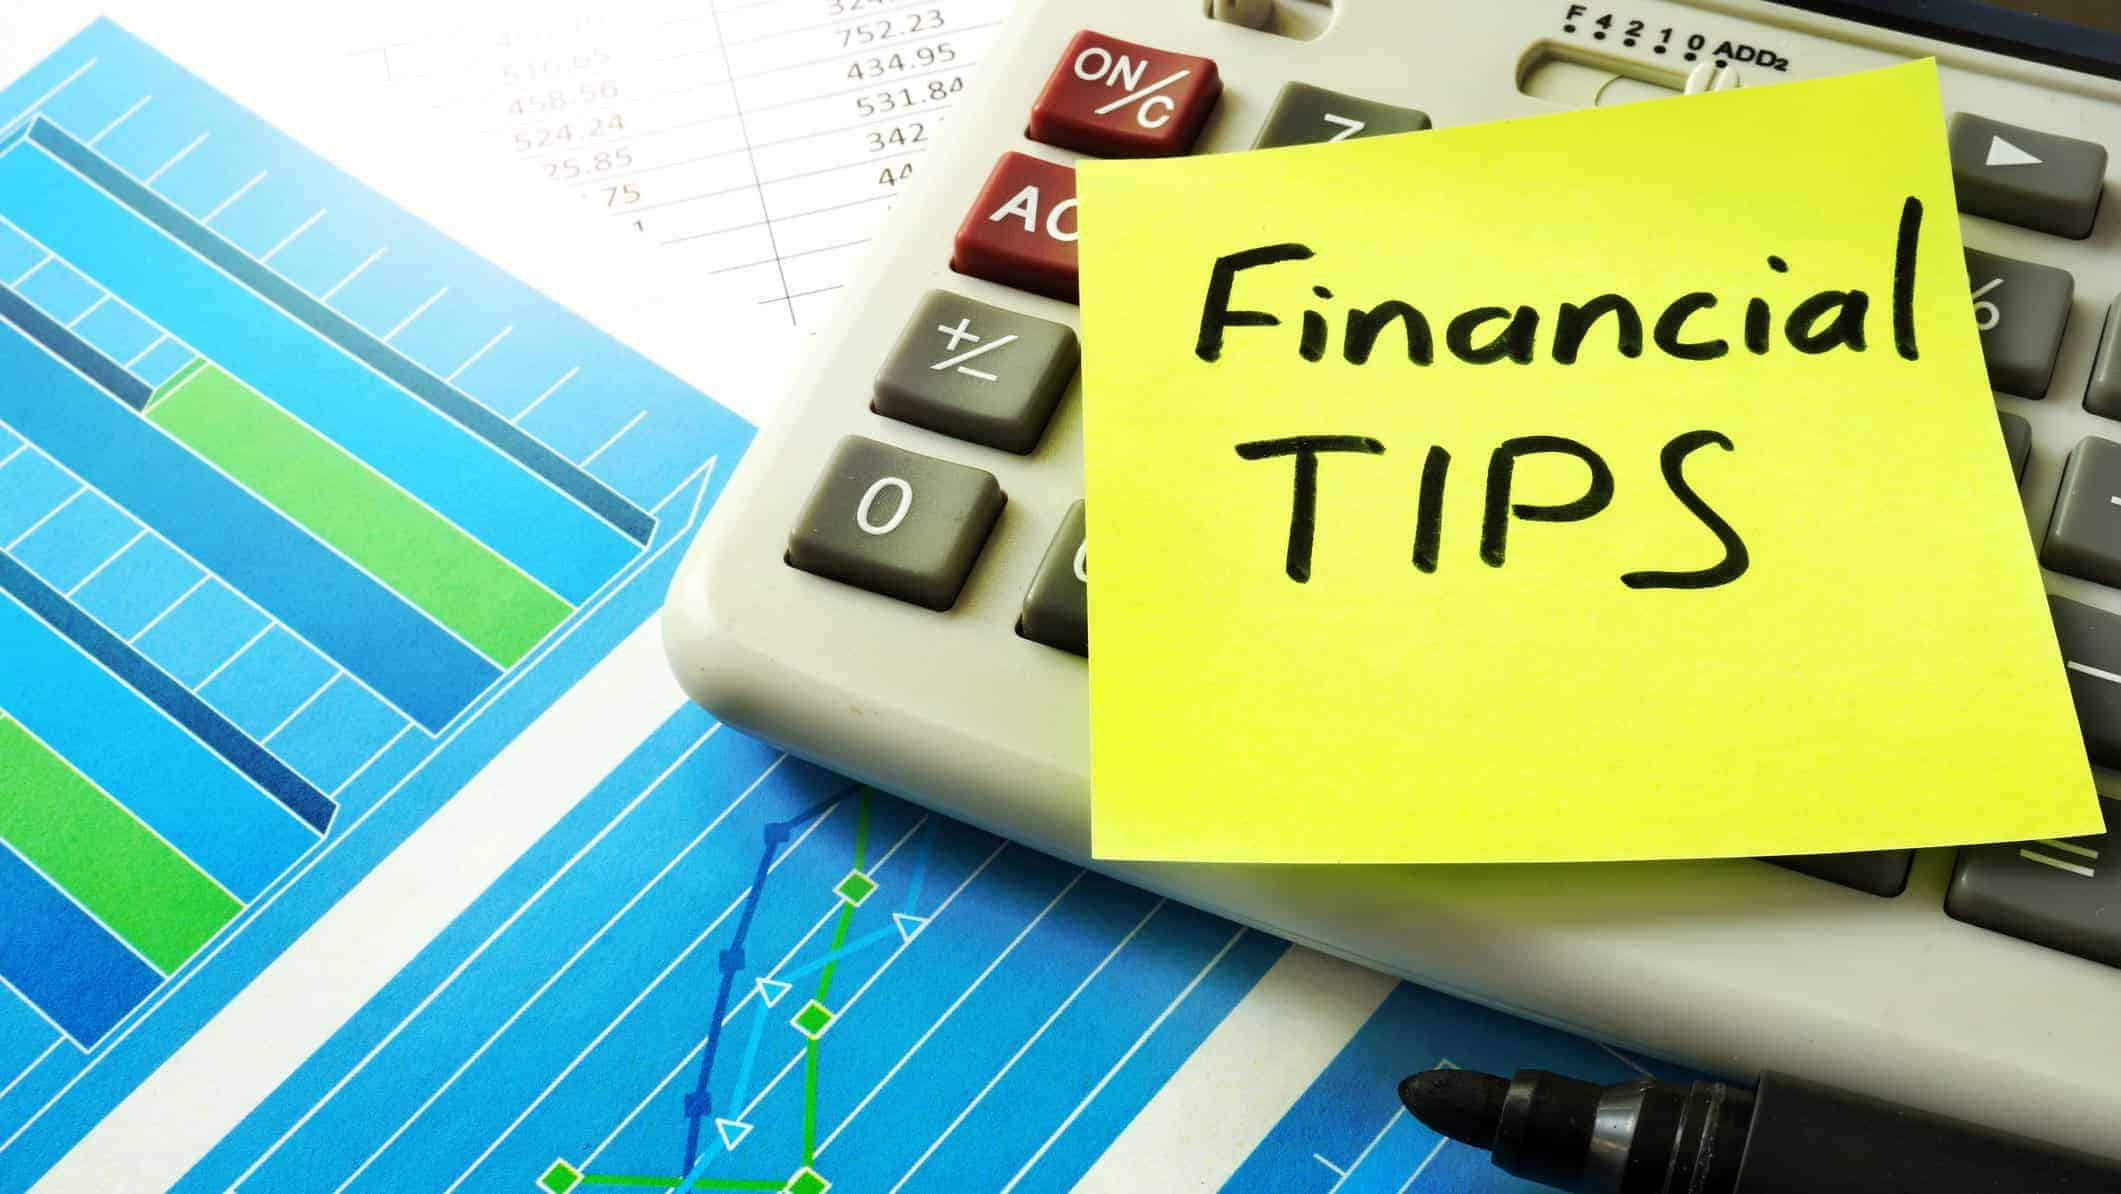 Financial Tips